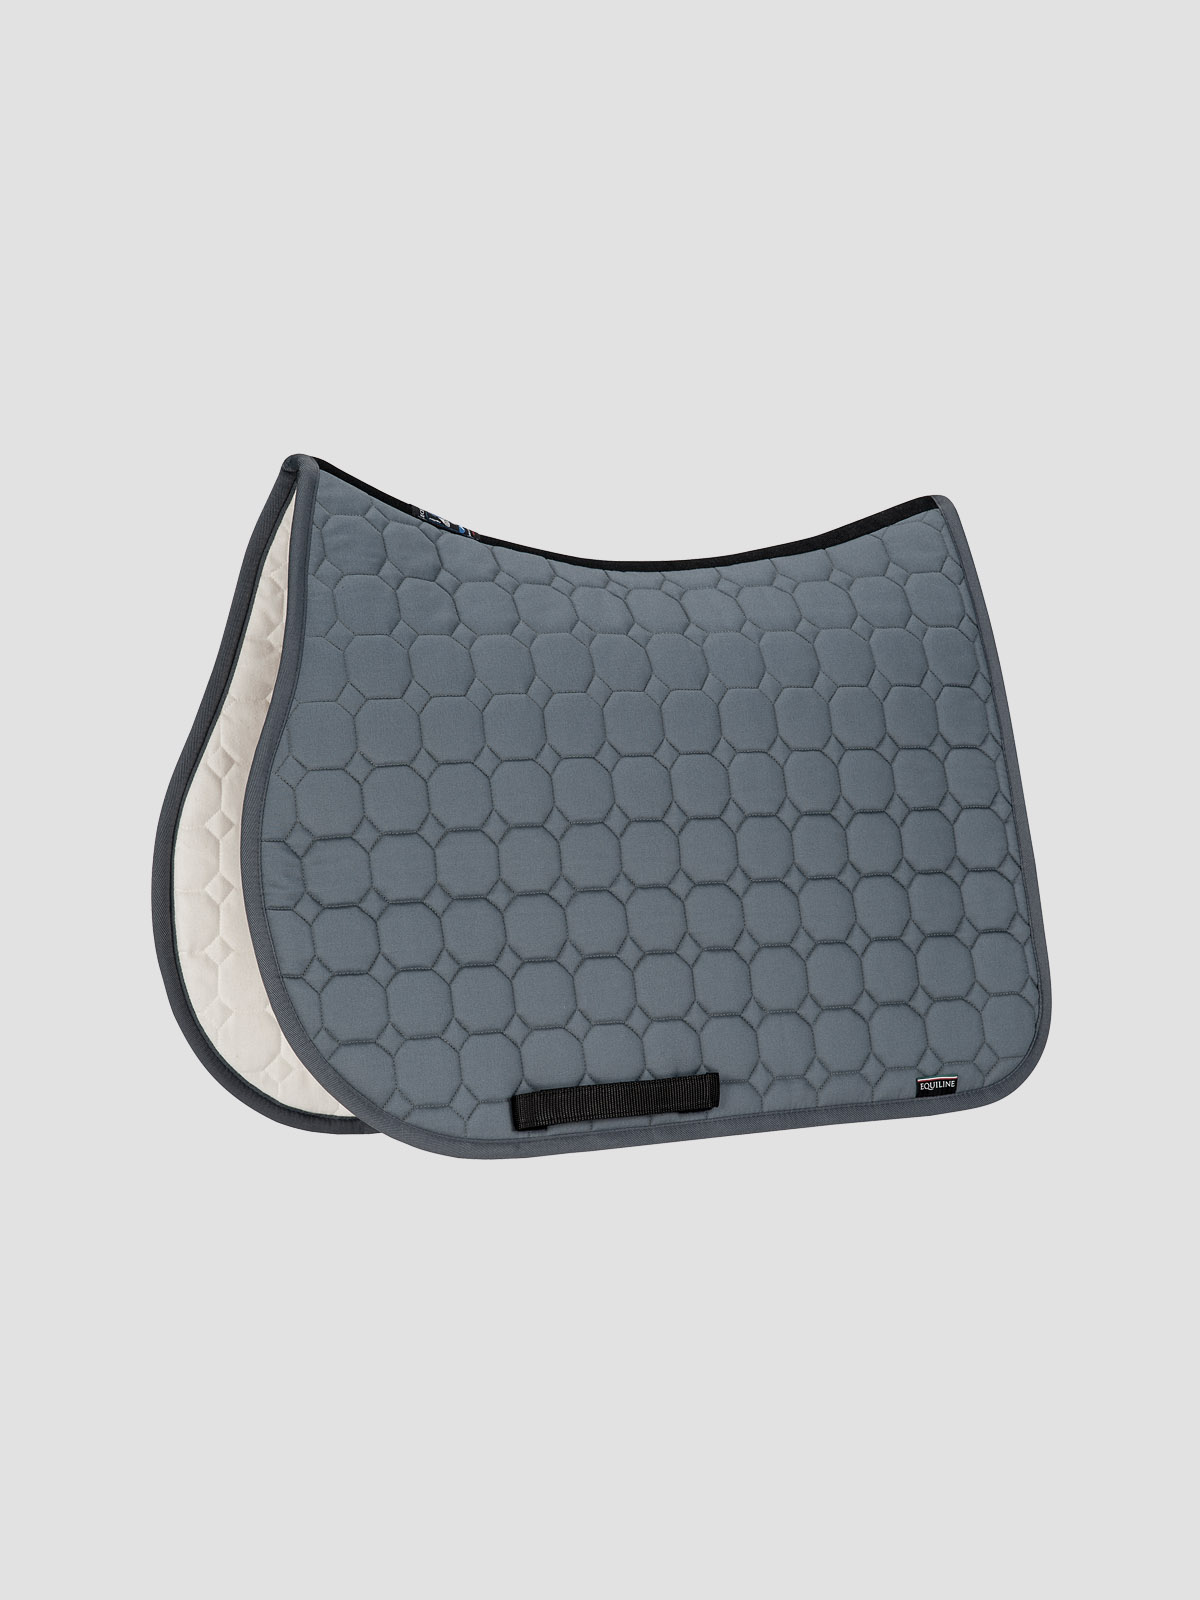 Octagon Saddle Pad 8